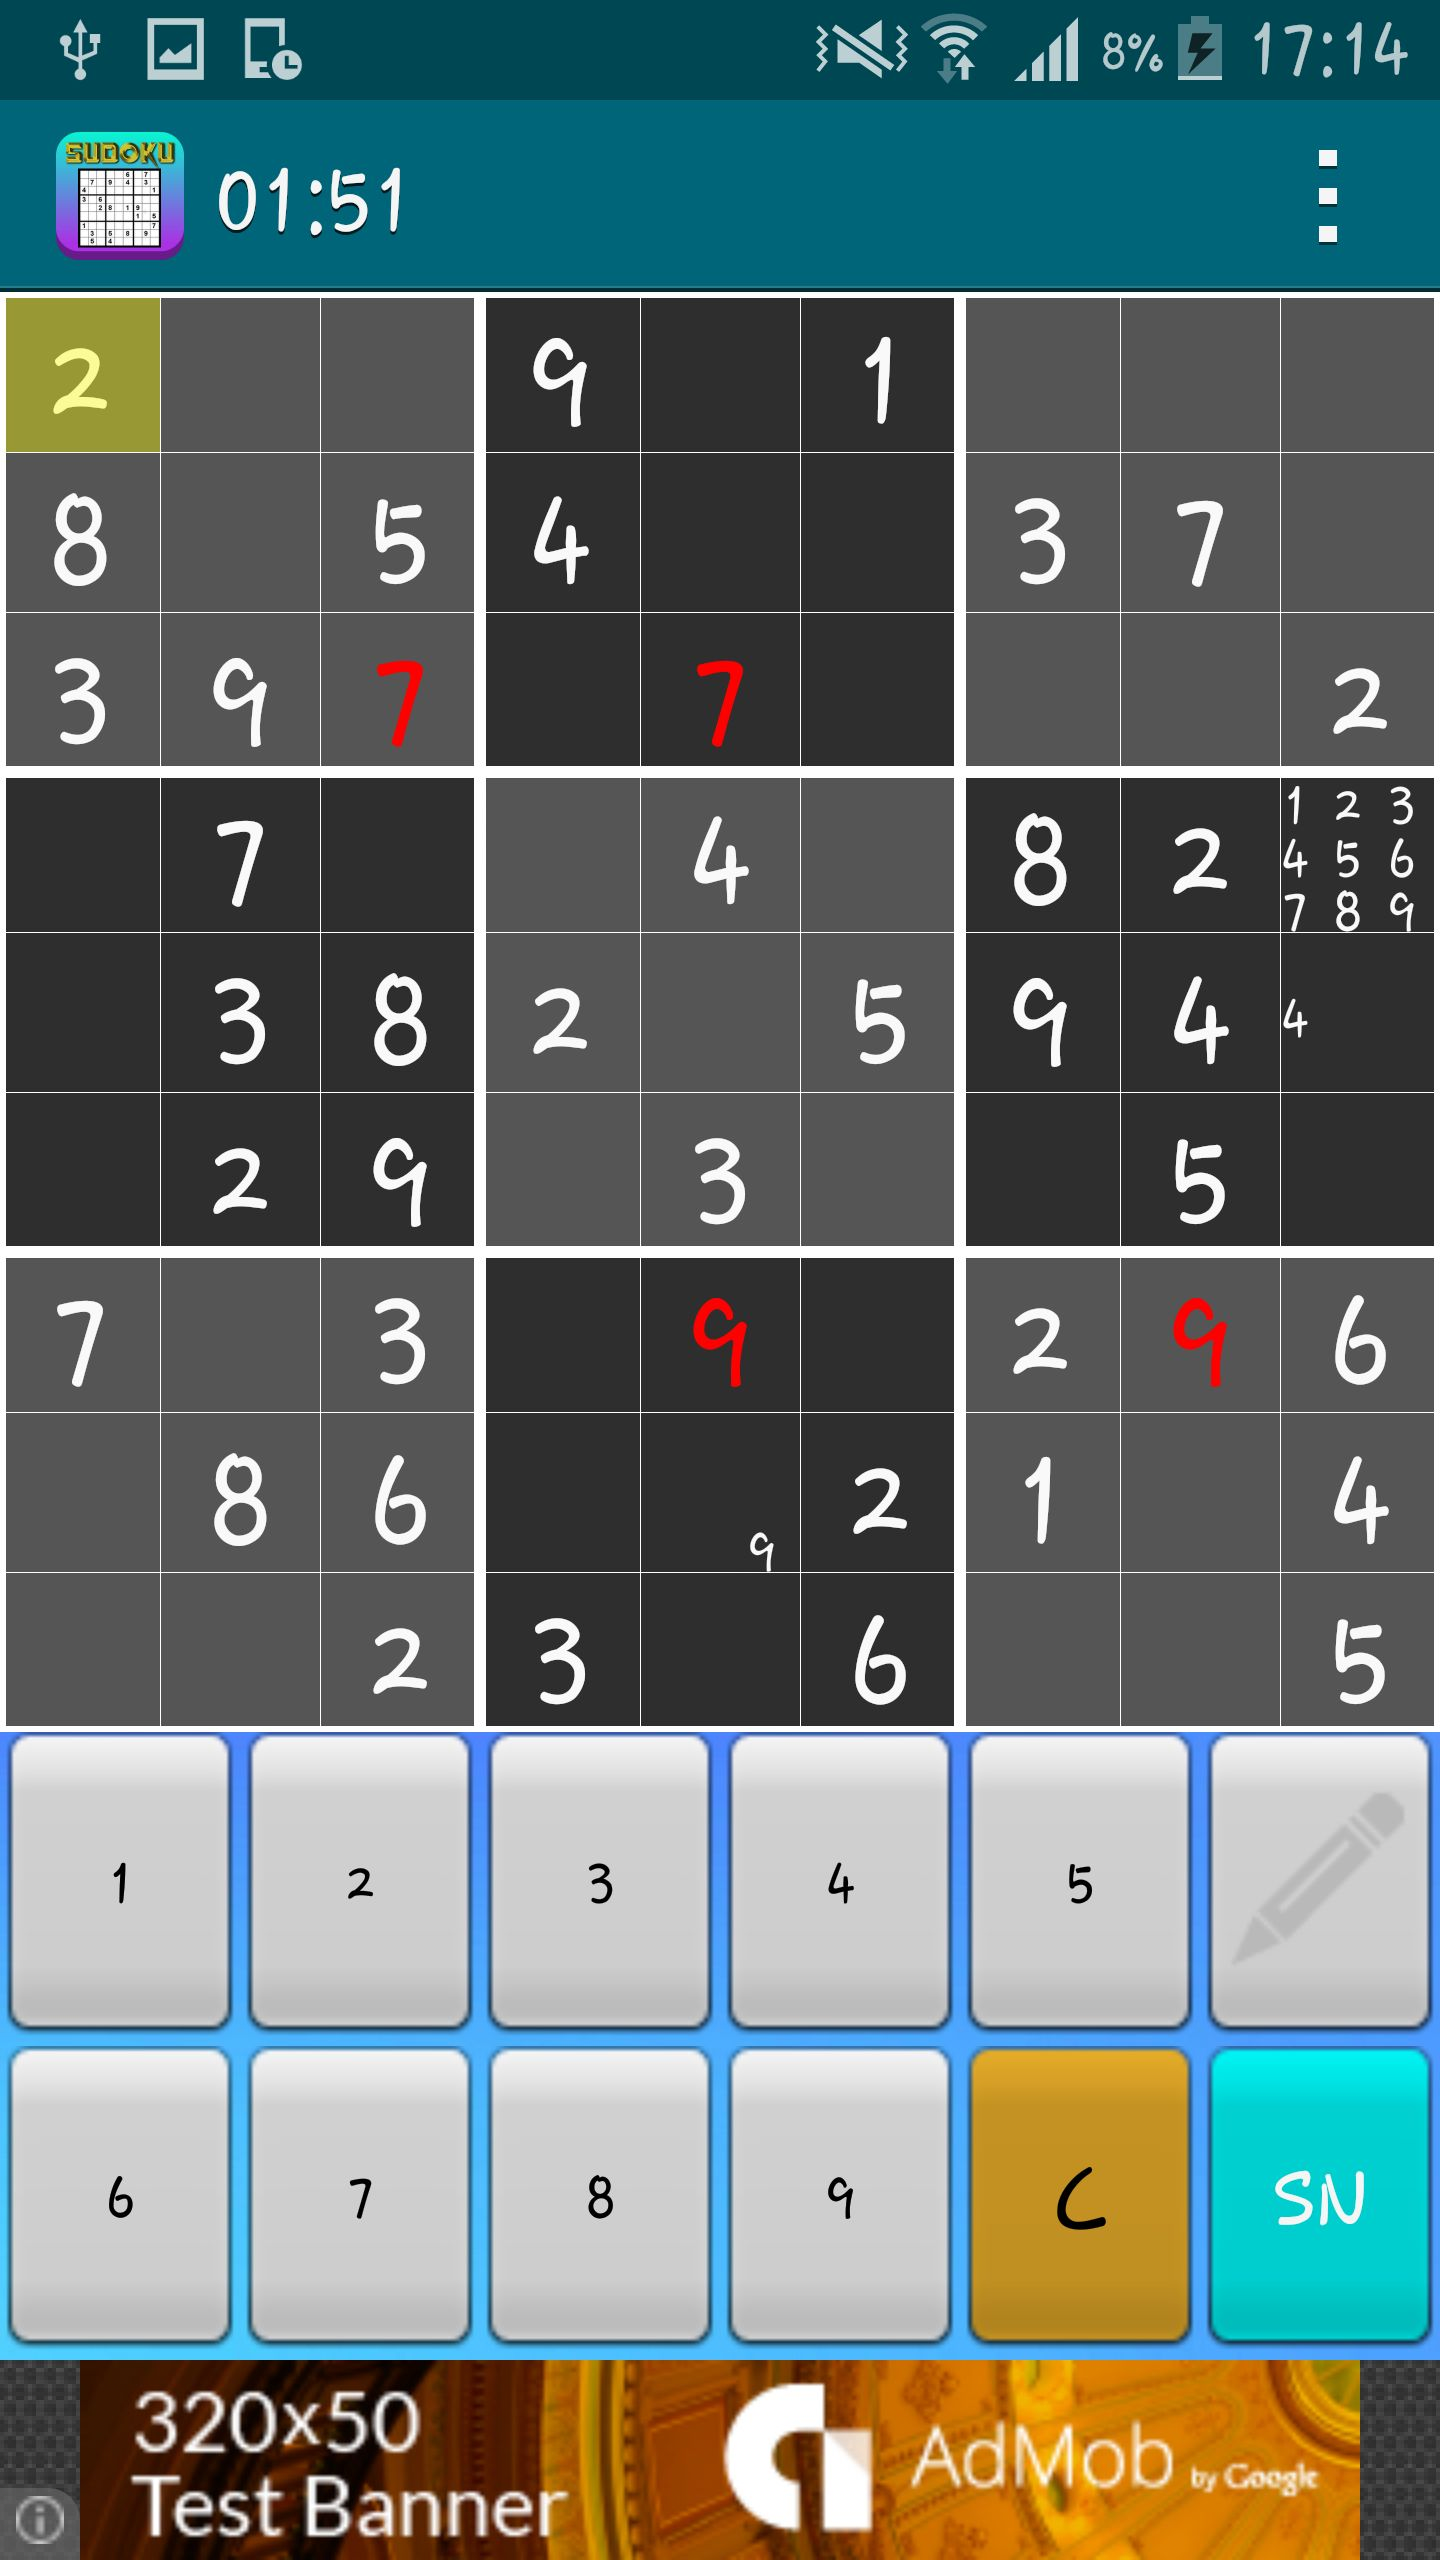 sudoku game in c++ with coding | Gameswalls org